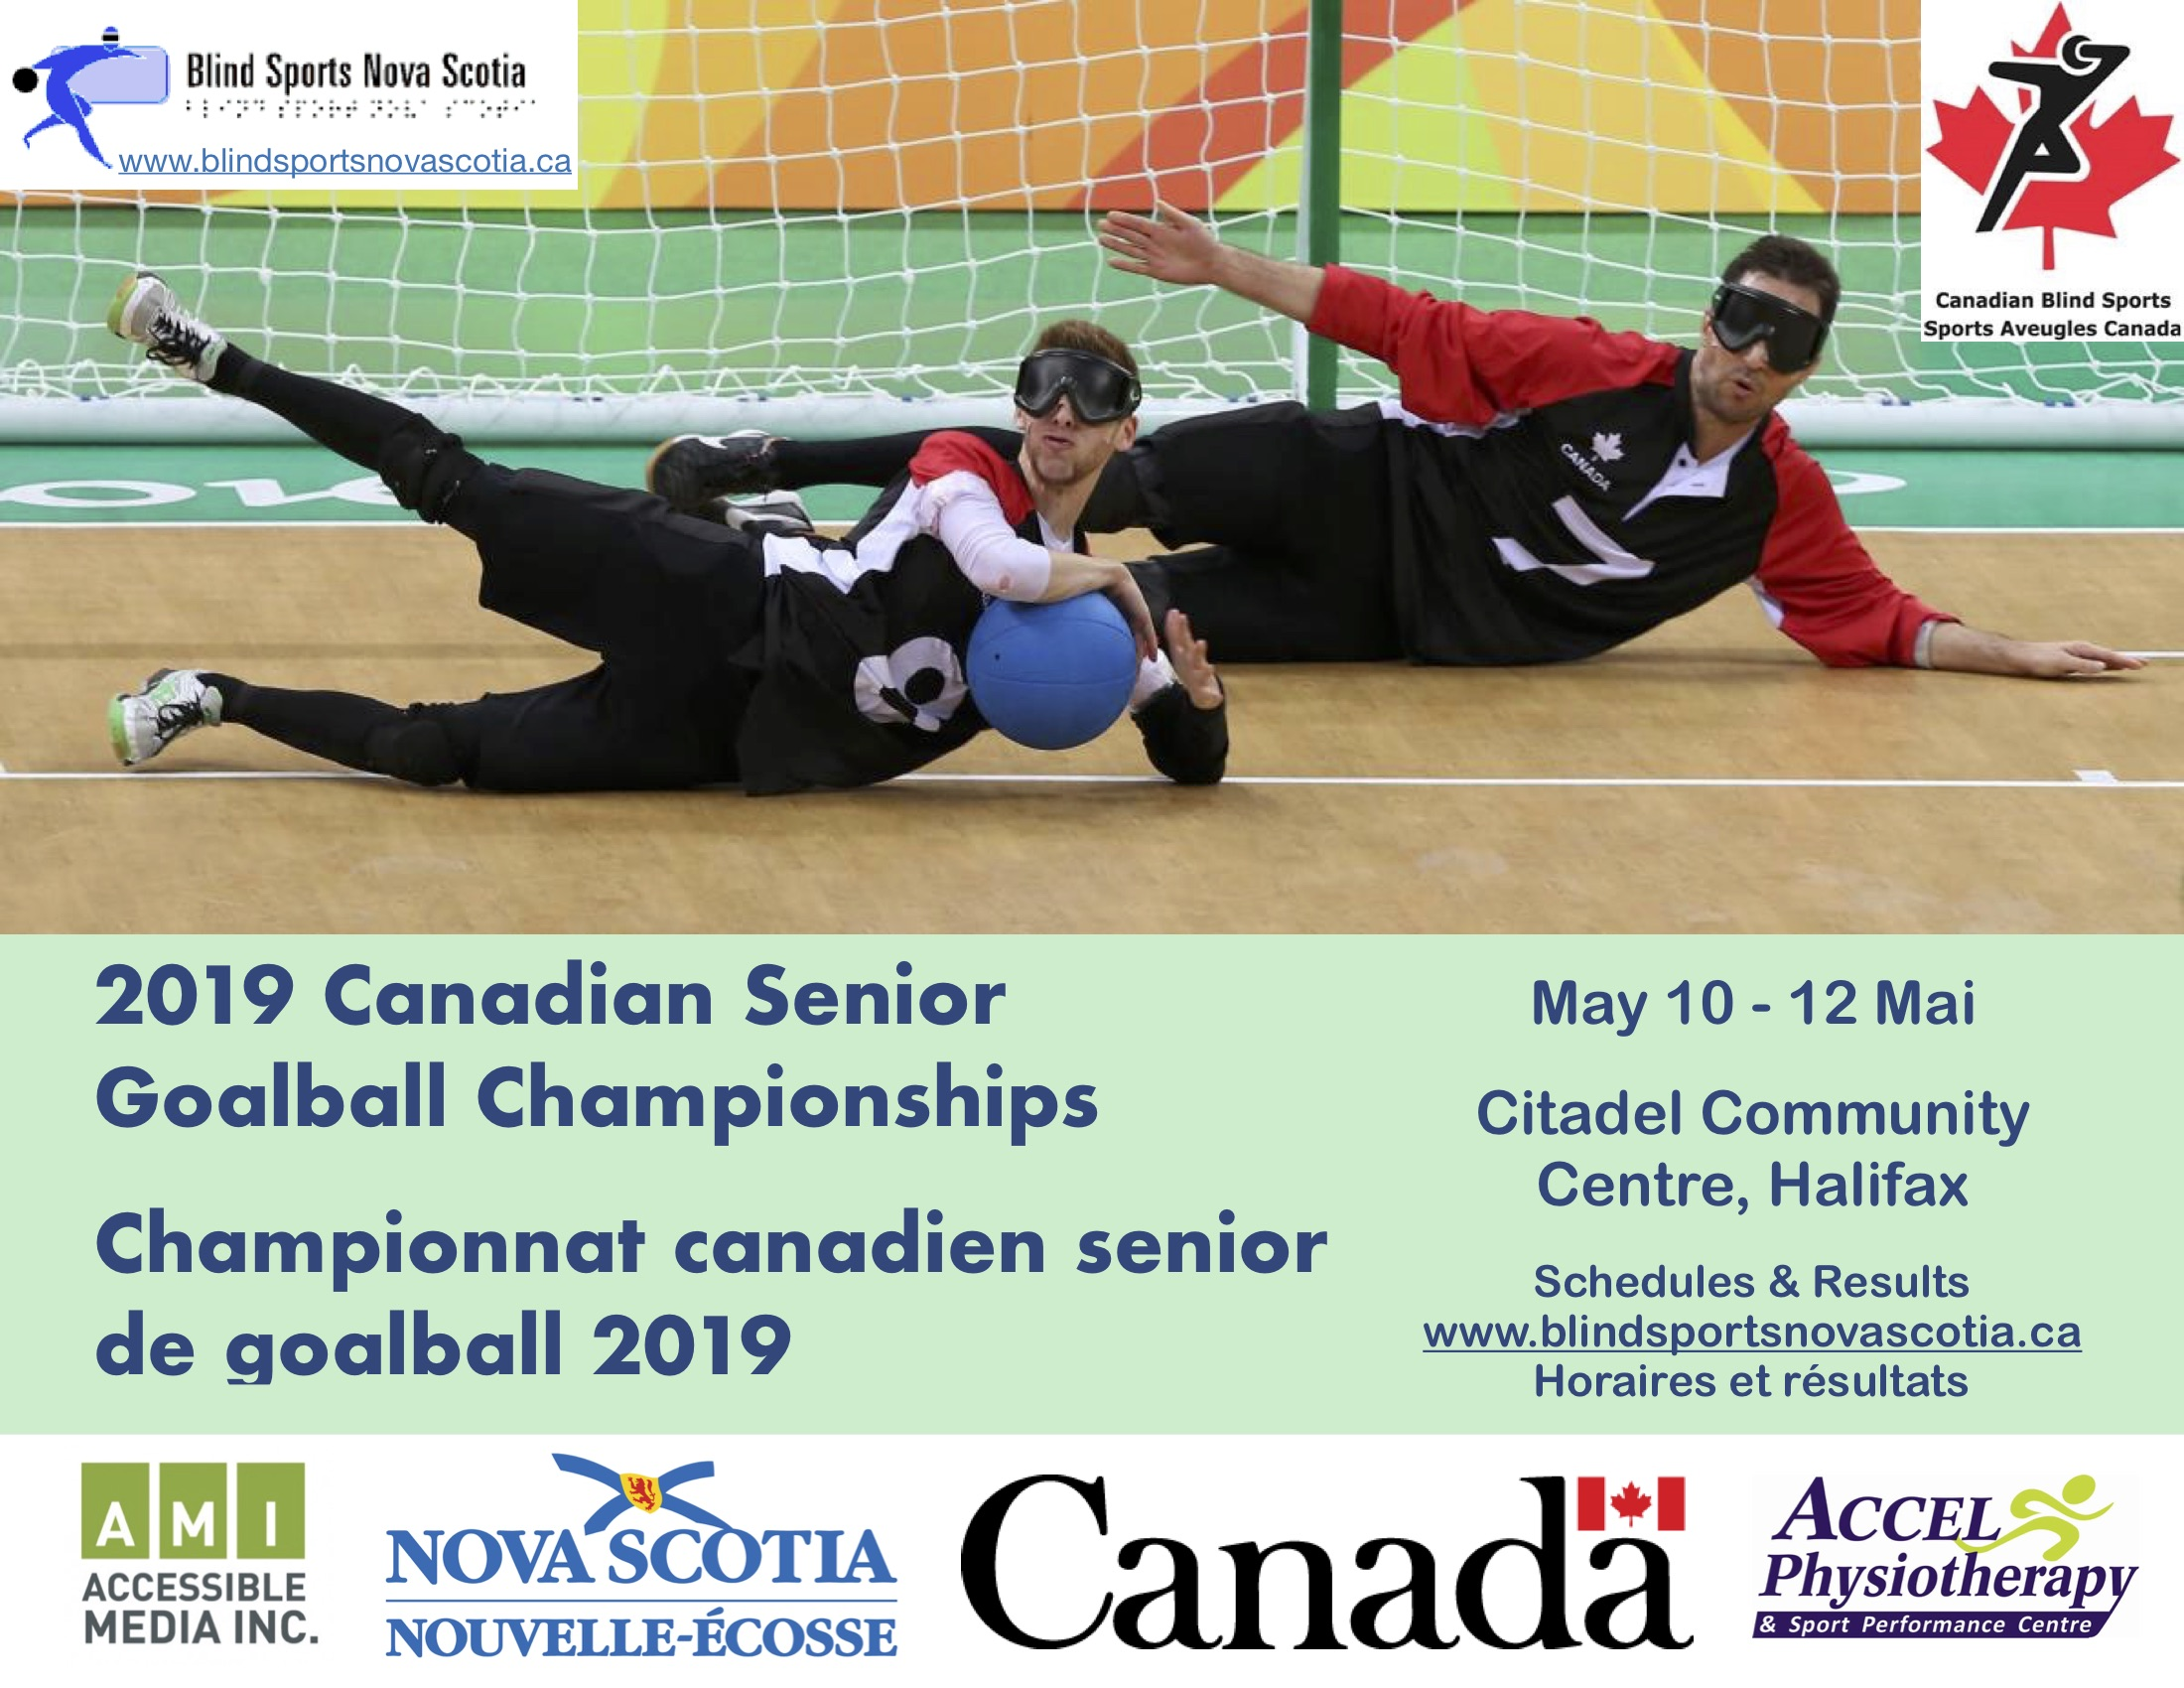 Poster Description: Two male players mid slide in front of a goalball net on a goal ball court. The athlete in front has a blue goalball nest in his arms. They are wearing blackout eyeshades. The poster reads 2019 Canadian Senior Goalball Championships / Championnat canadien senior de goalball 2019. Host & sponsor logos include Canadian Blind Sports / Sport Aveugles Canada; Blind Sports Nova Scotia www.blindsportsnovascotia.ca; AMI Accessible Media Inc.; Nova Scotia / Nouvelle-Ecosse; Accel Physiotherapy & Sport Performance; Government of Canada